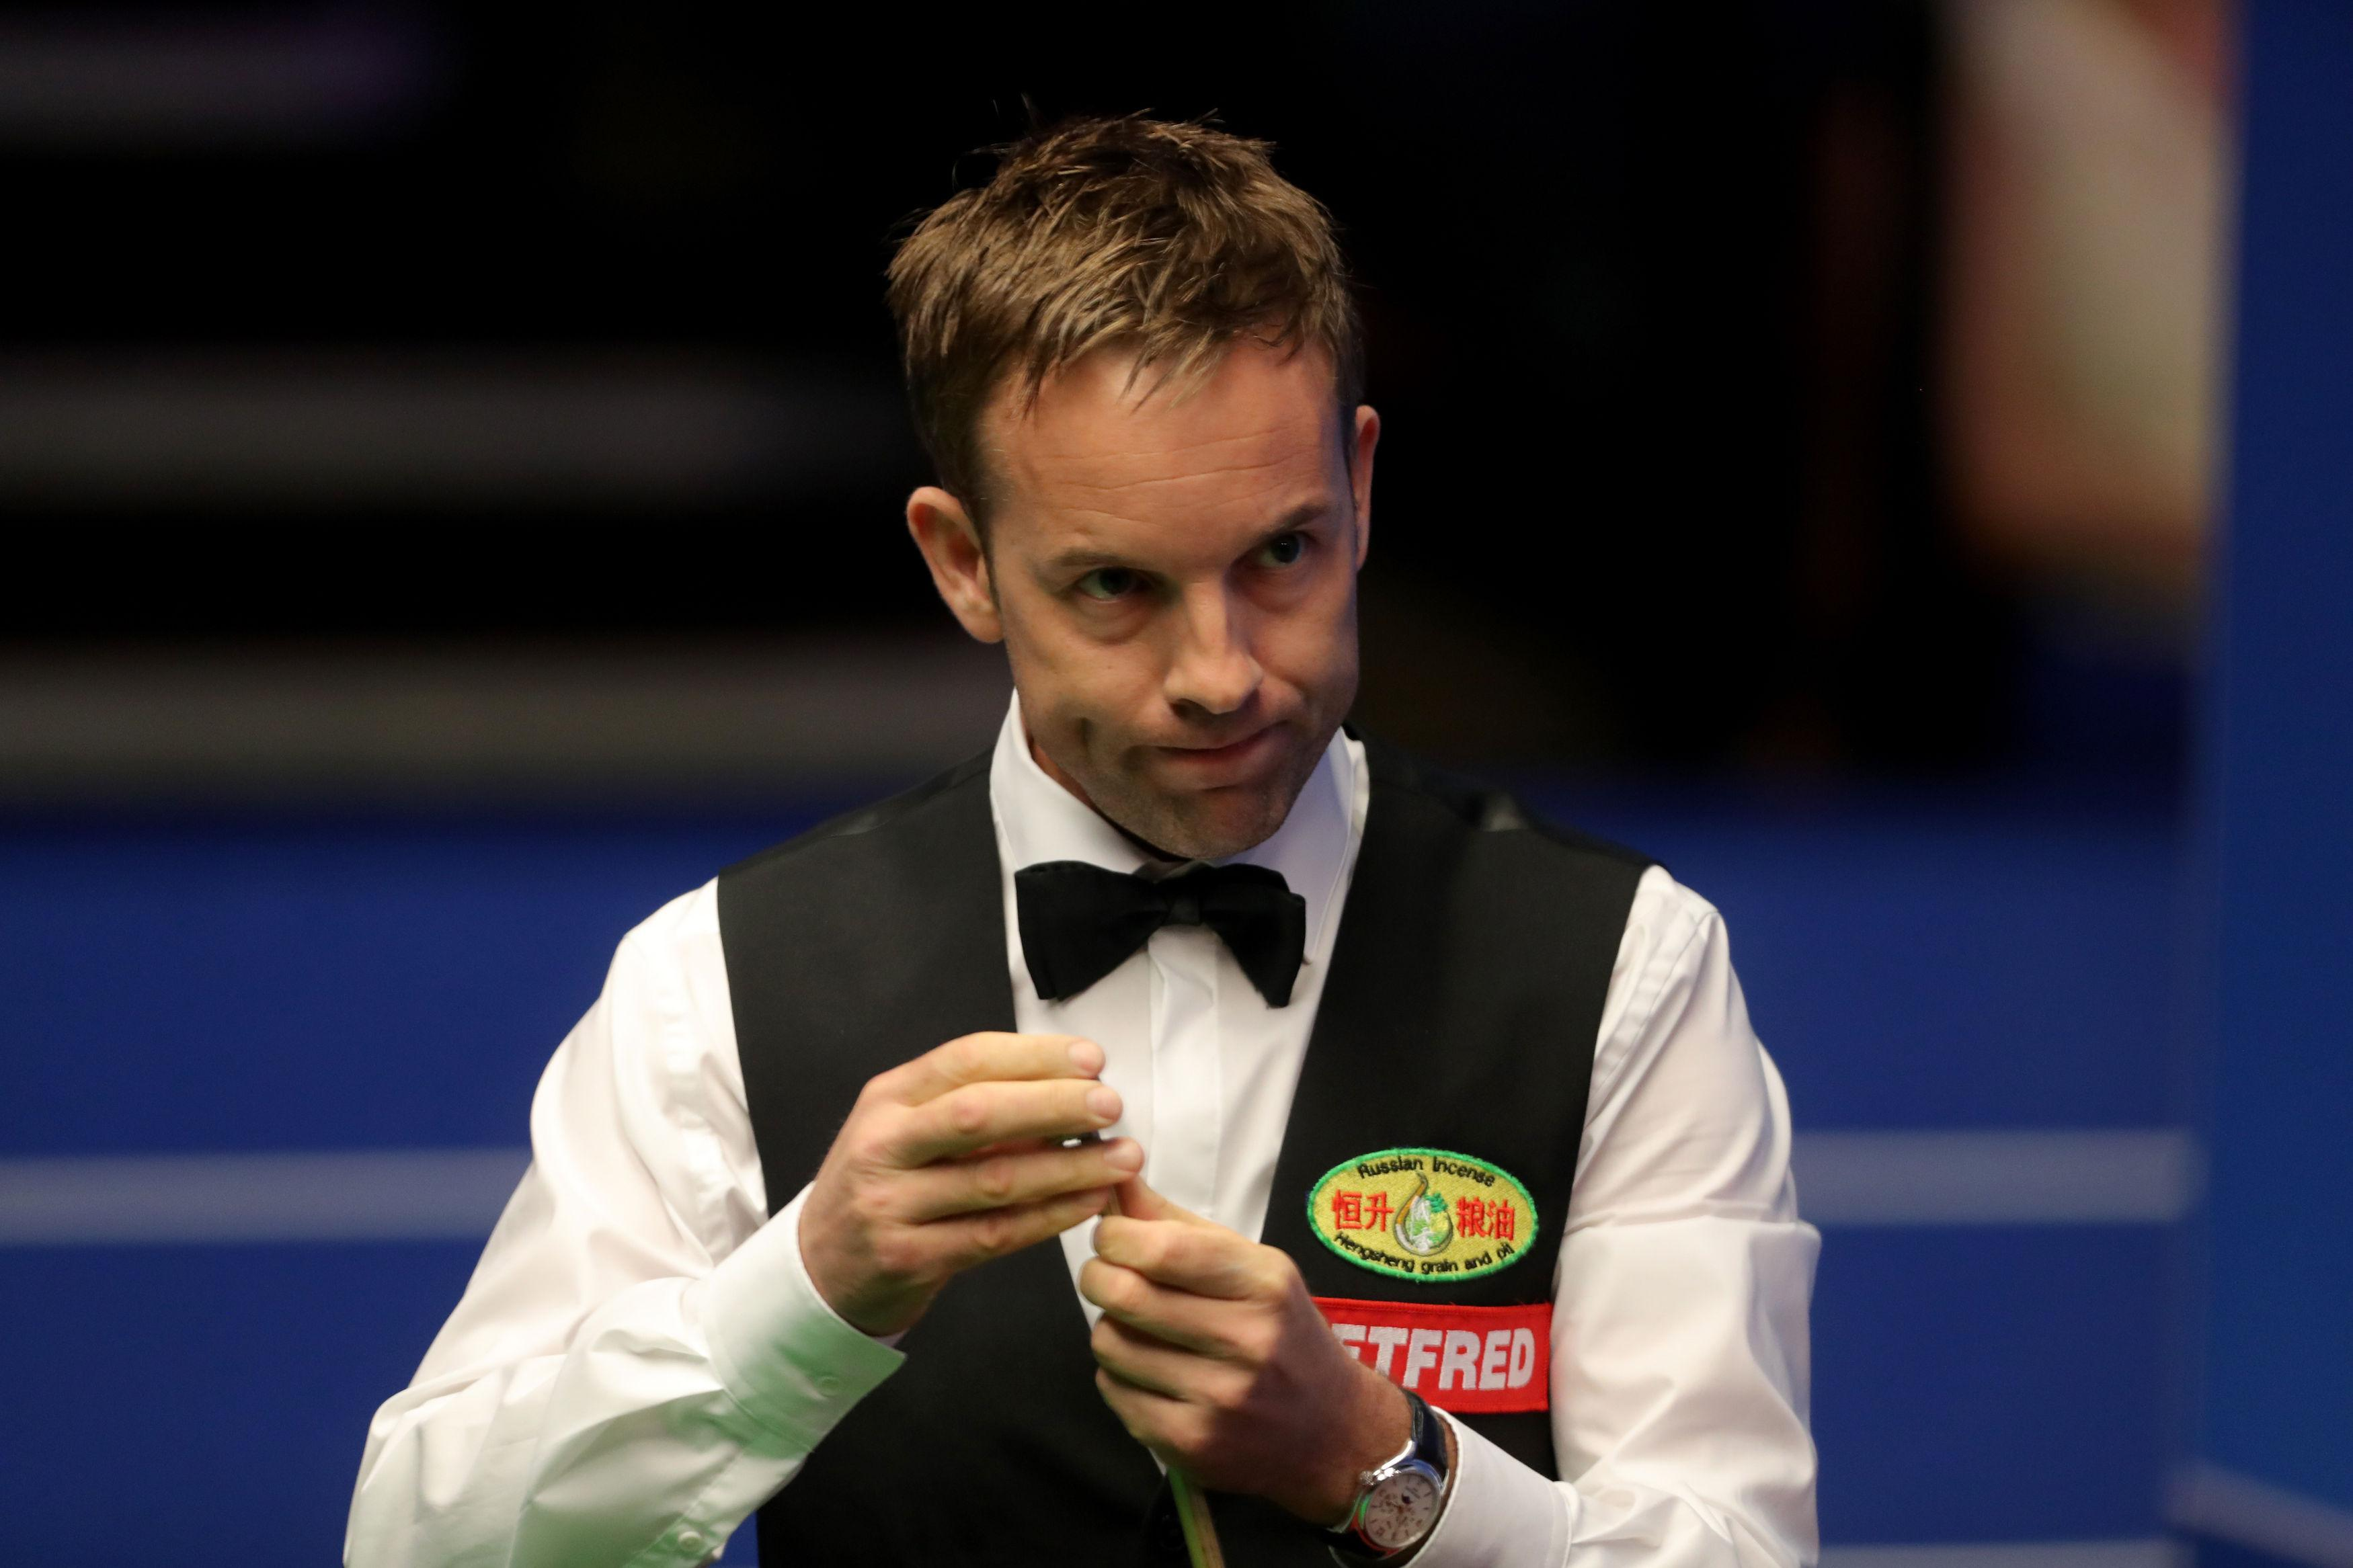 Essex player Ali Carter was one of the man that the Somerset punter backed to win in China